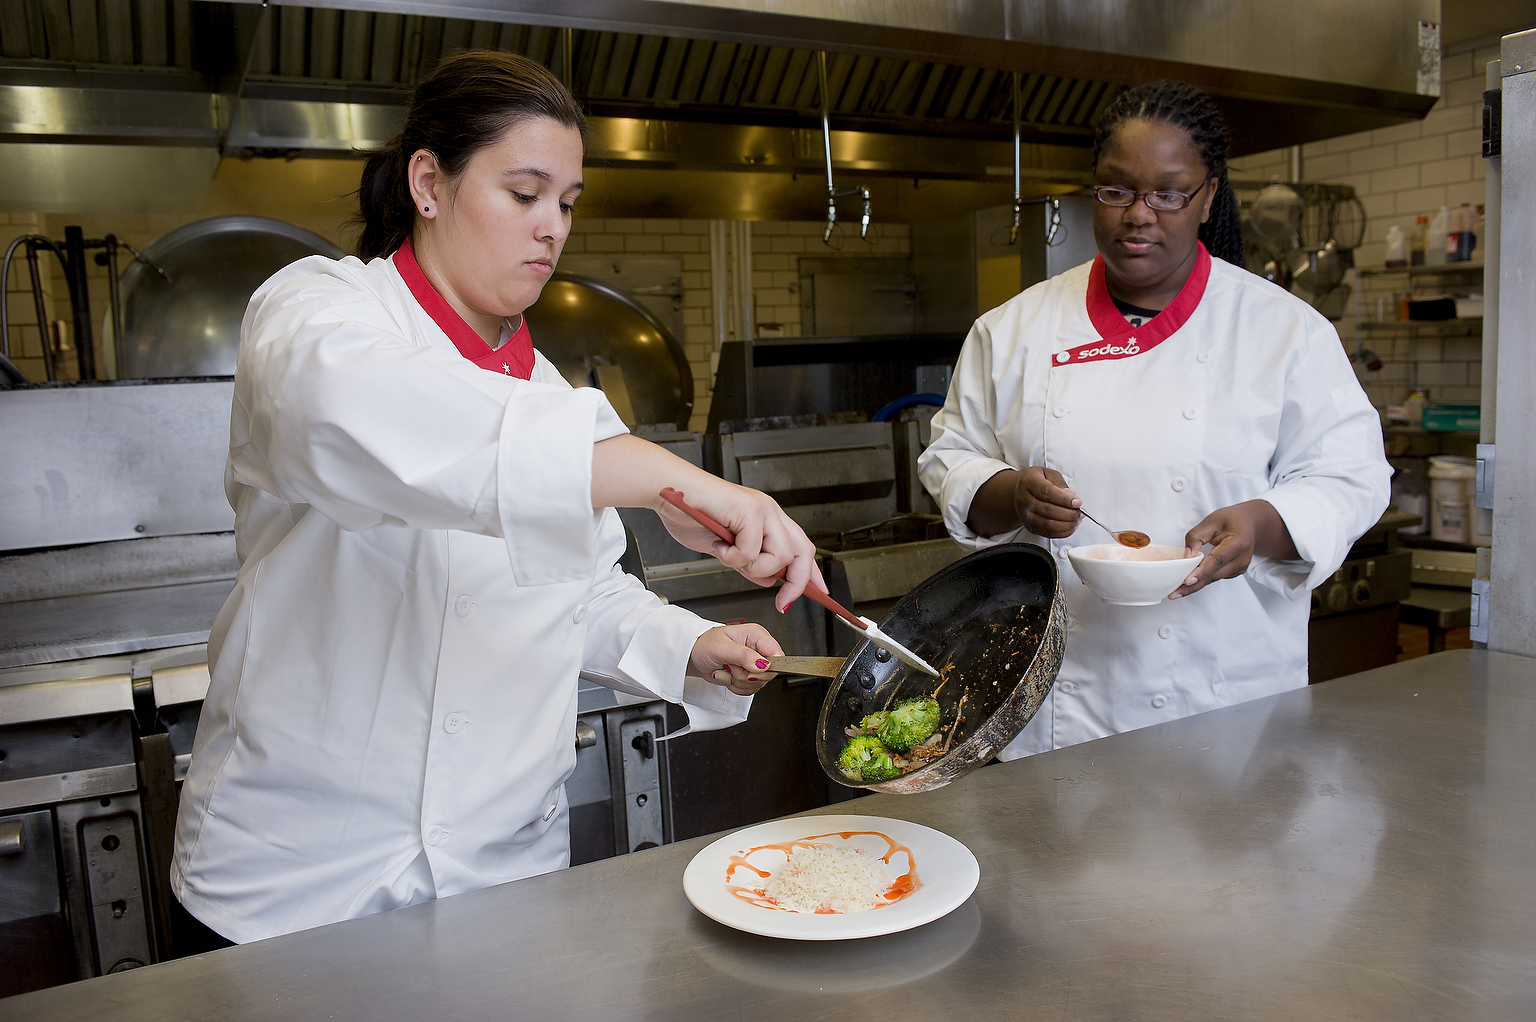 Food Service Worker Education Requirements